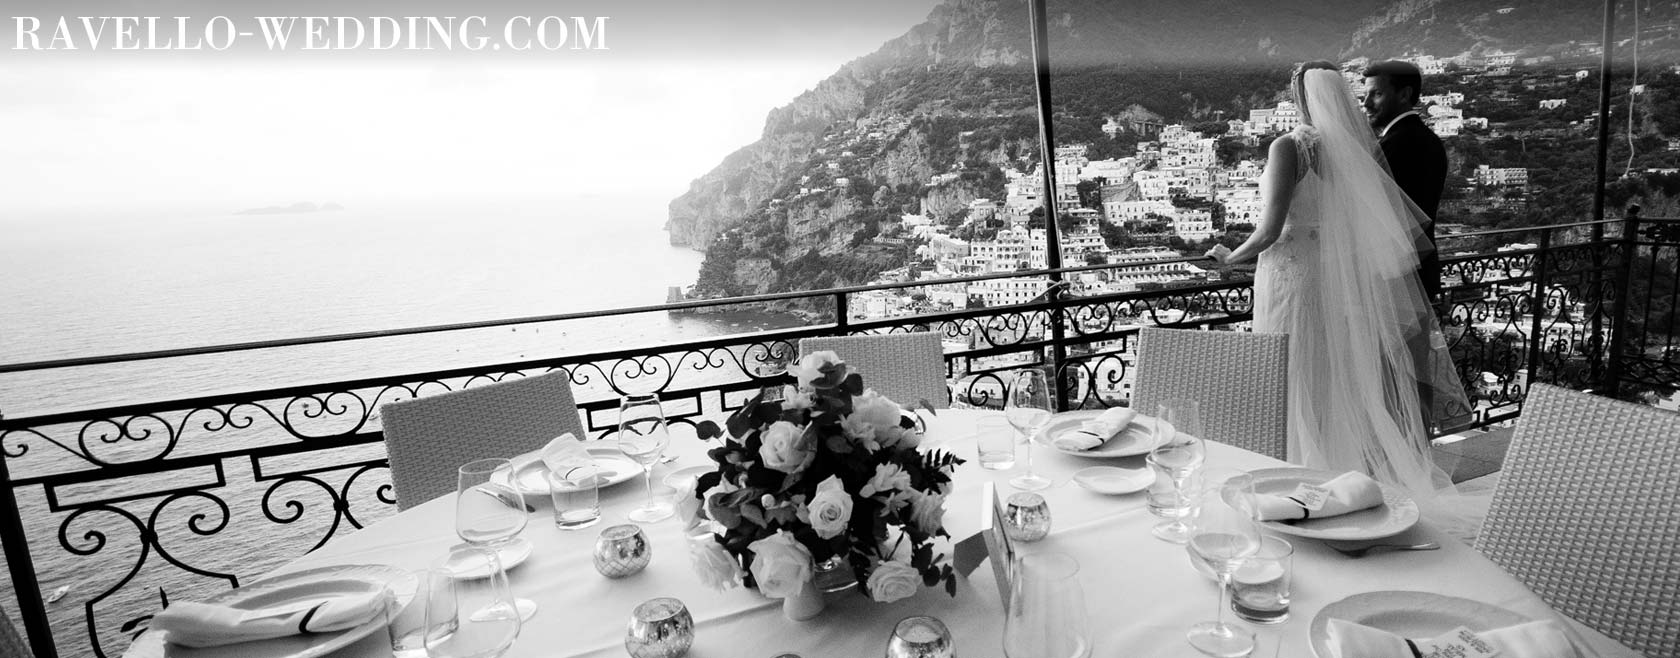 Wedding venues | Positano